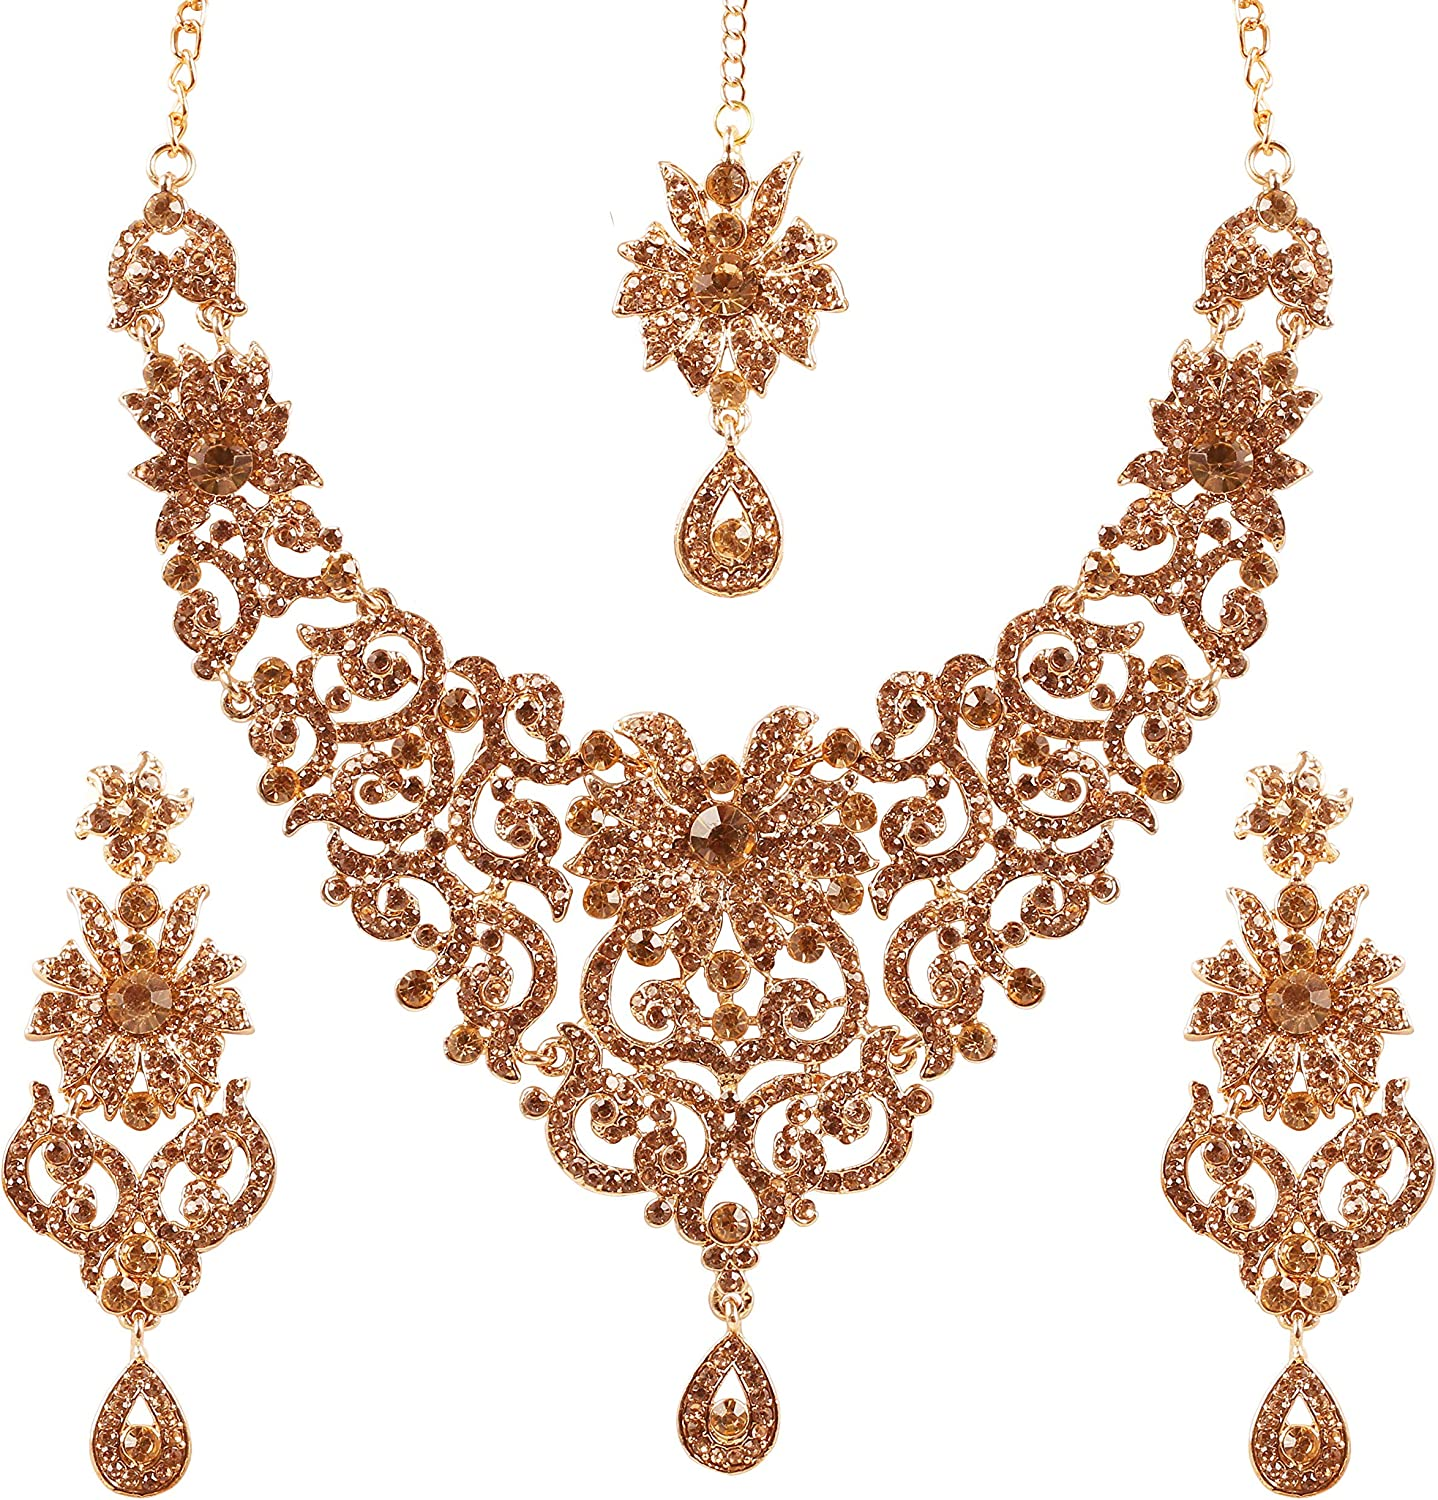 Touchstone Indian Bollywood Free shipping anywhere in the nation Gorgeous Intricate High quality Workmanship Spark